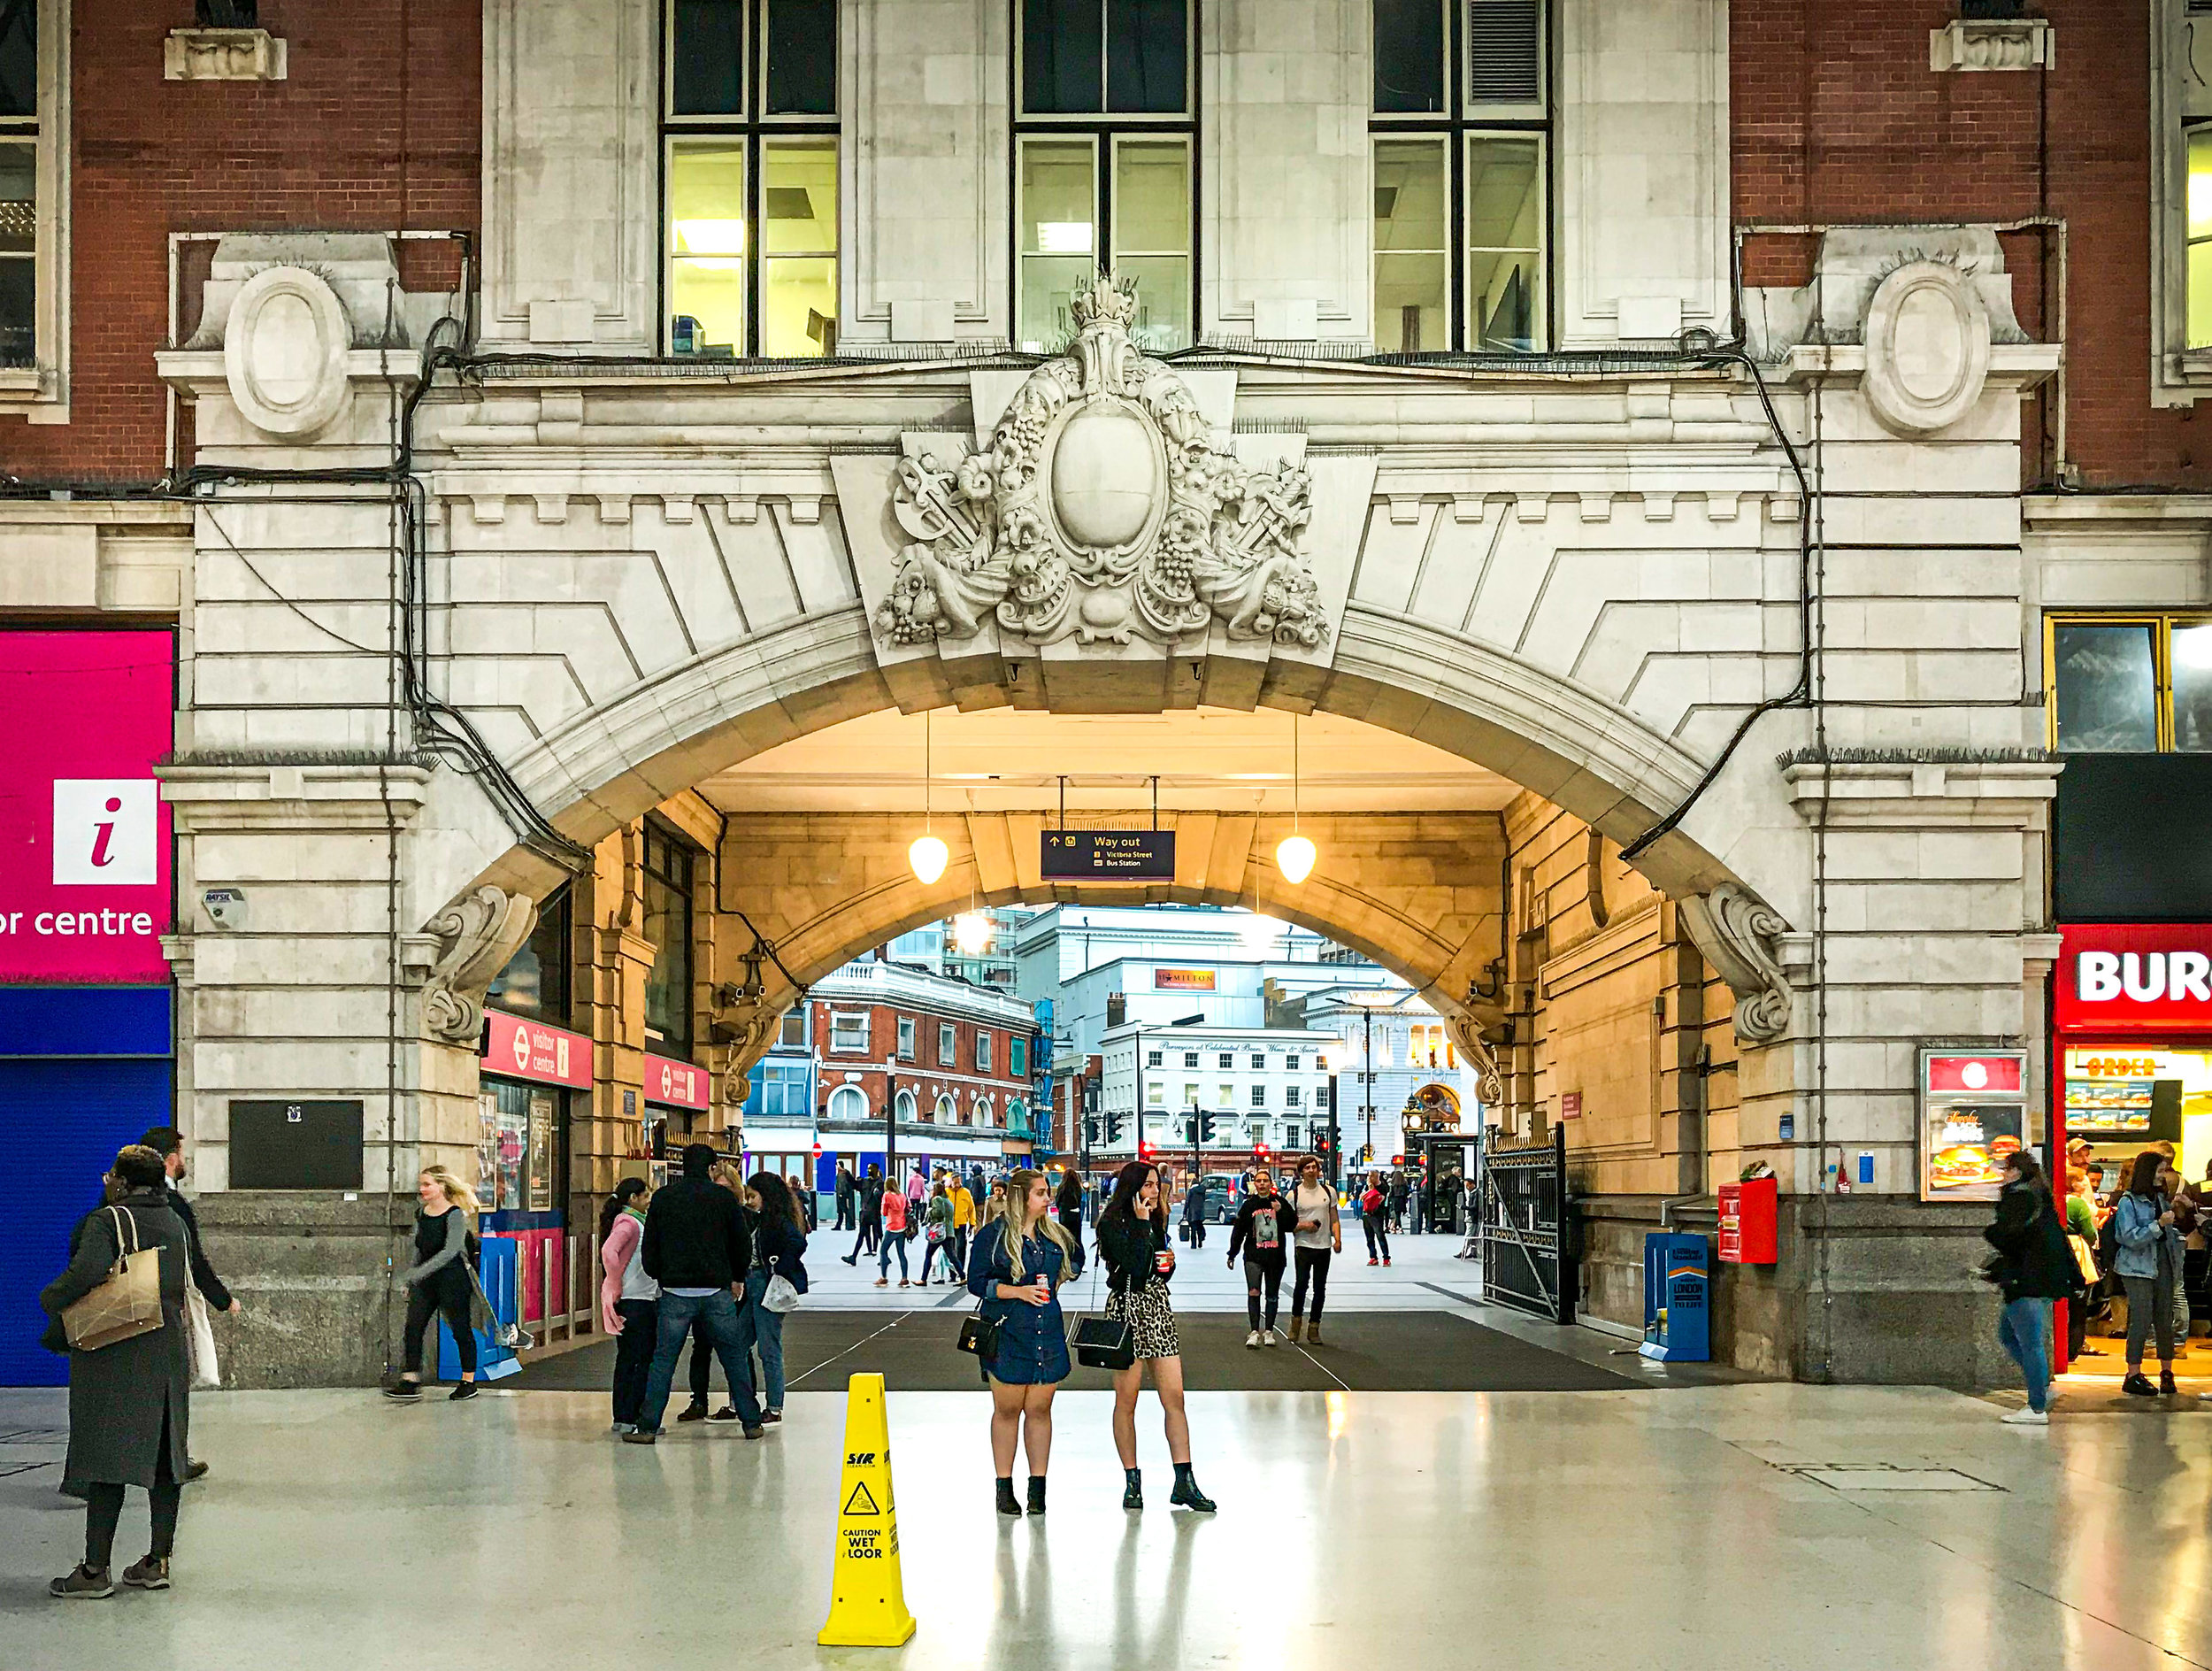 The main entrance to Victoria Station where most of my days began and ended